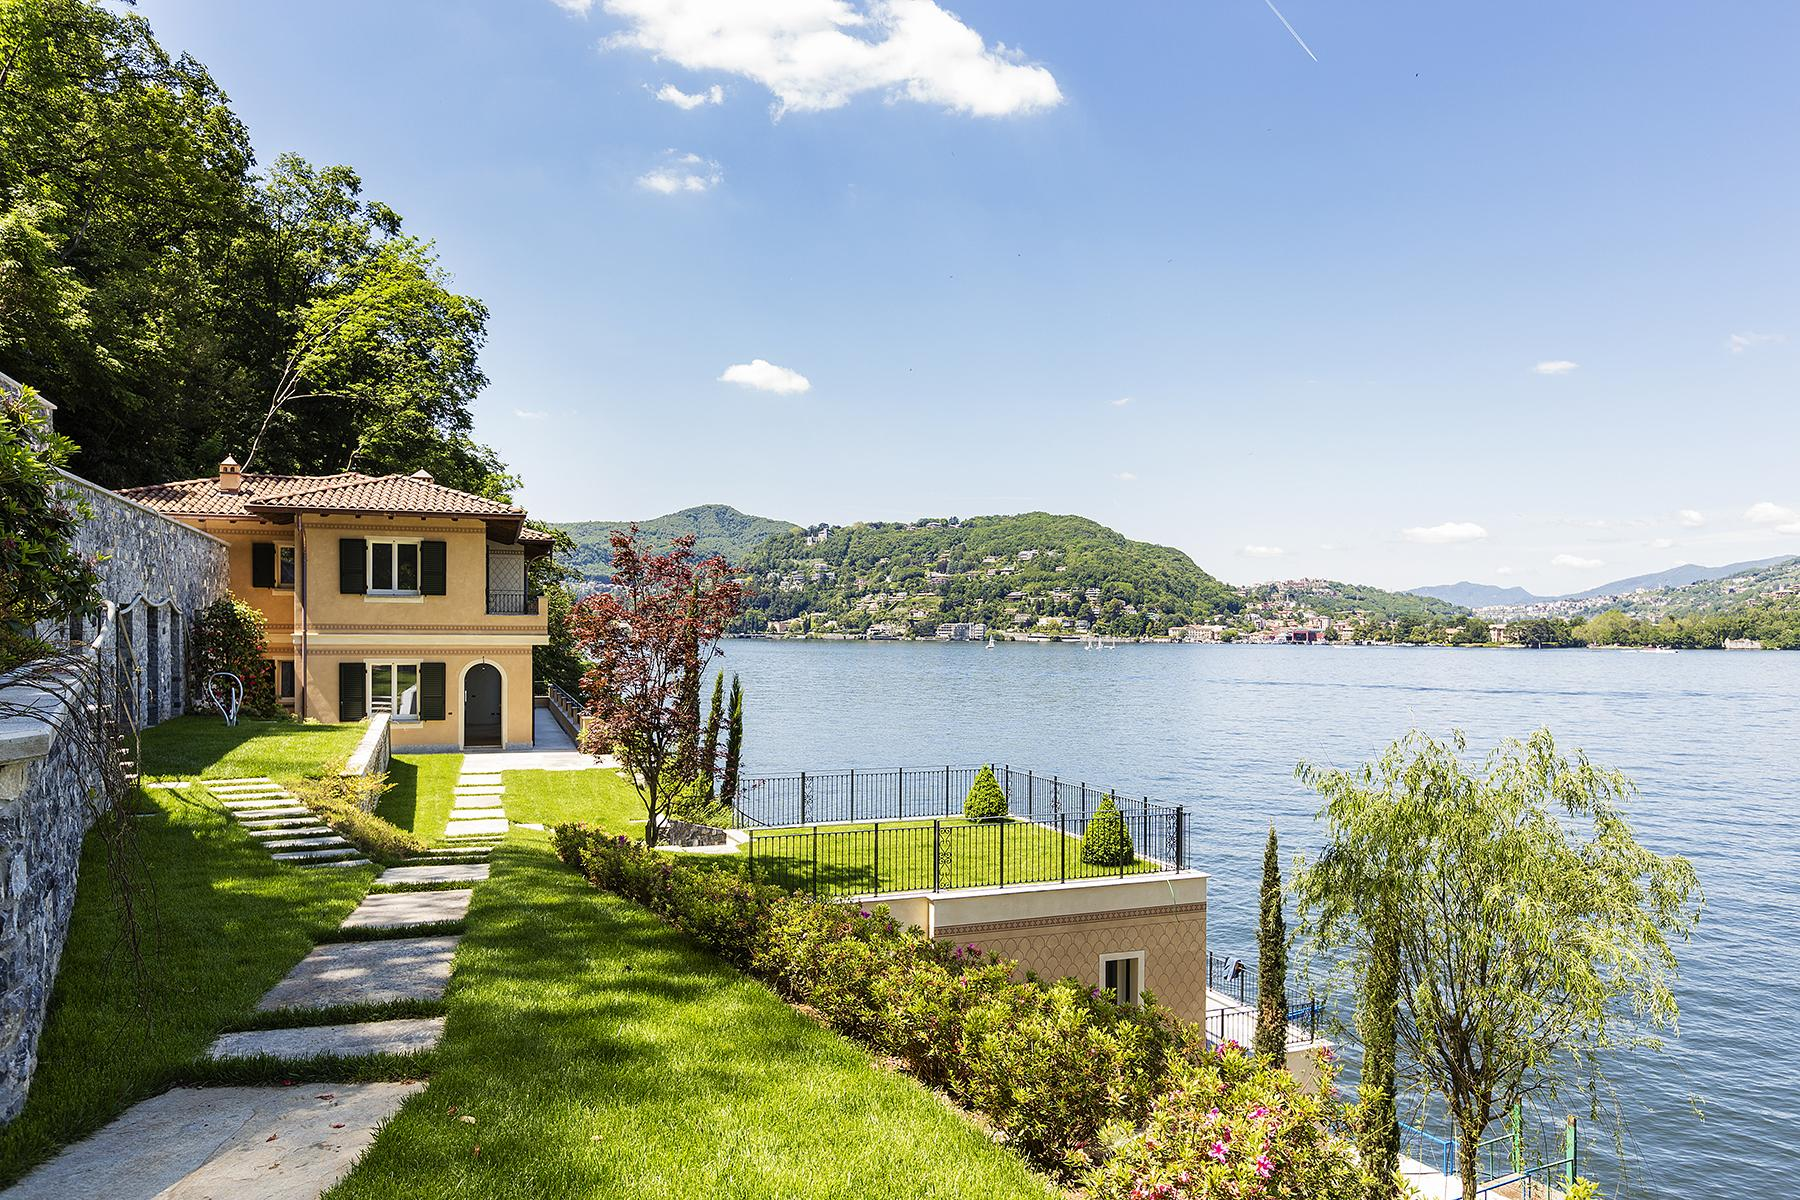 Fascinating villa in one of the most strategic areas of the lake - 15